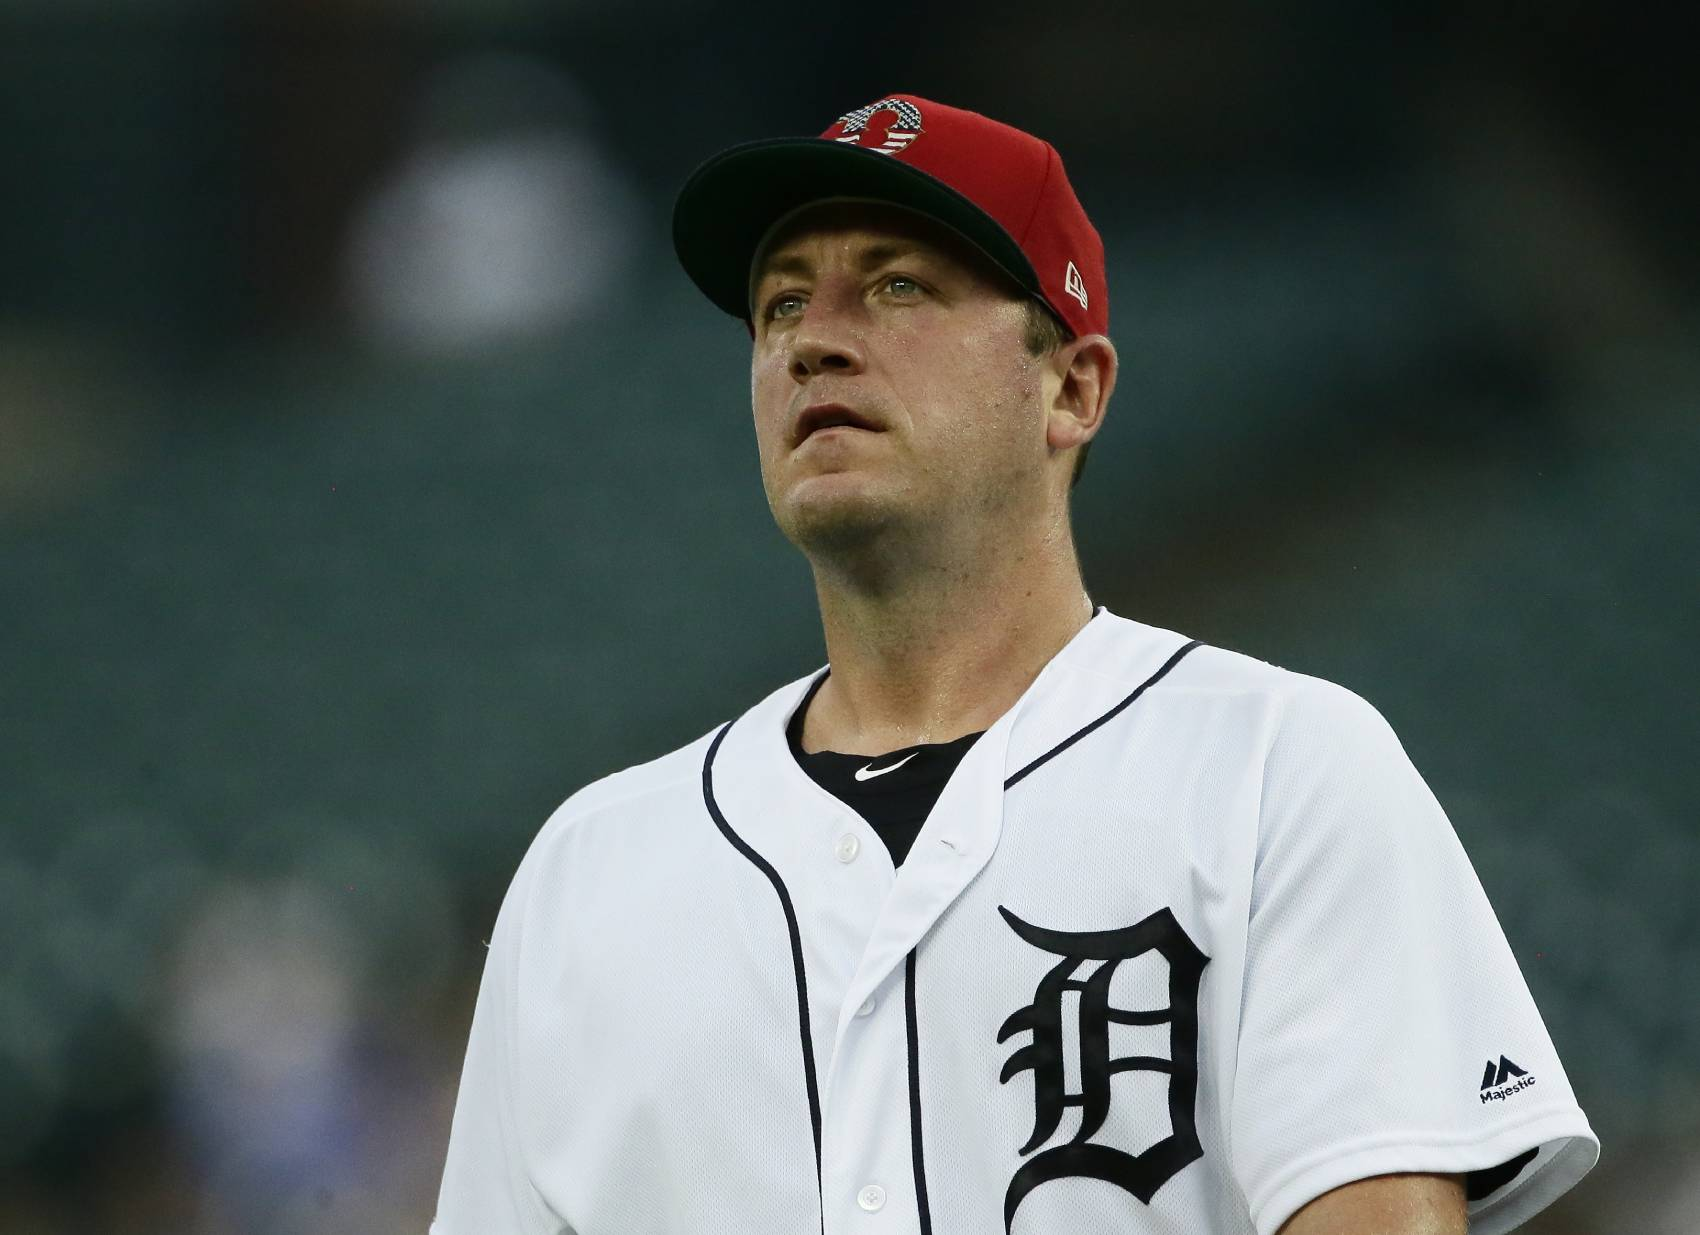 Former Washington Nationals ace Jordan Zimmermann has had a rough stint in Detroit.